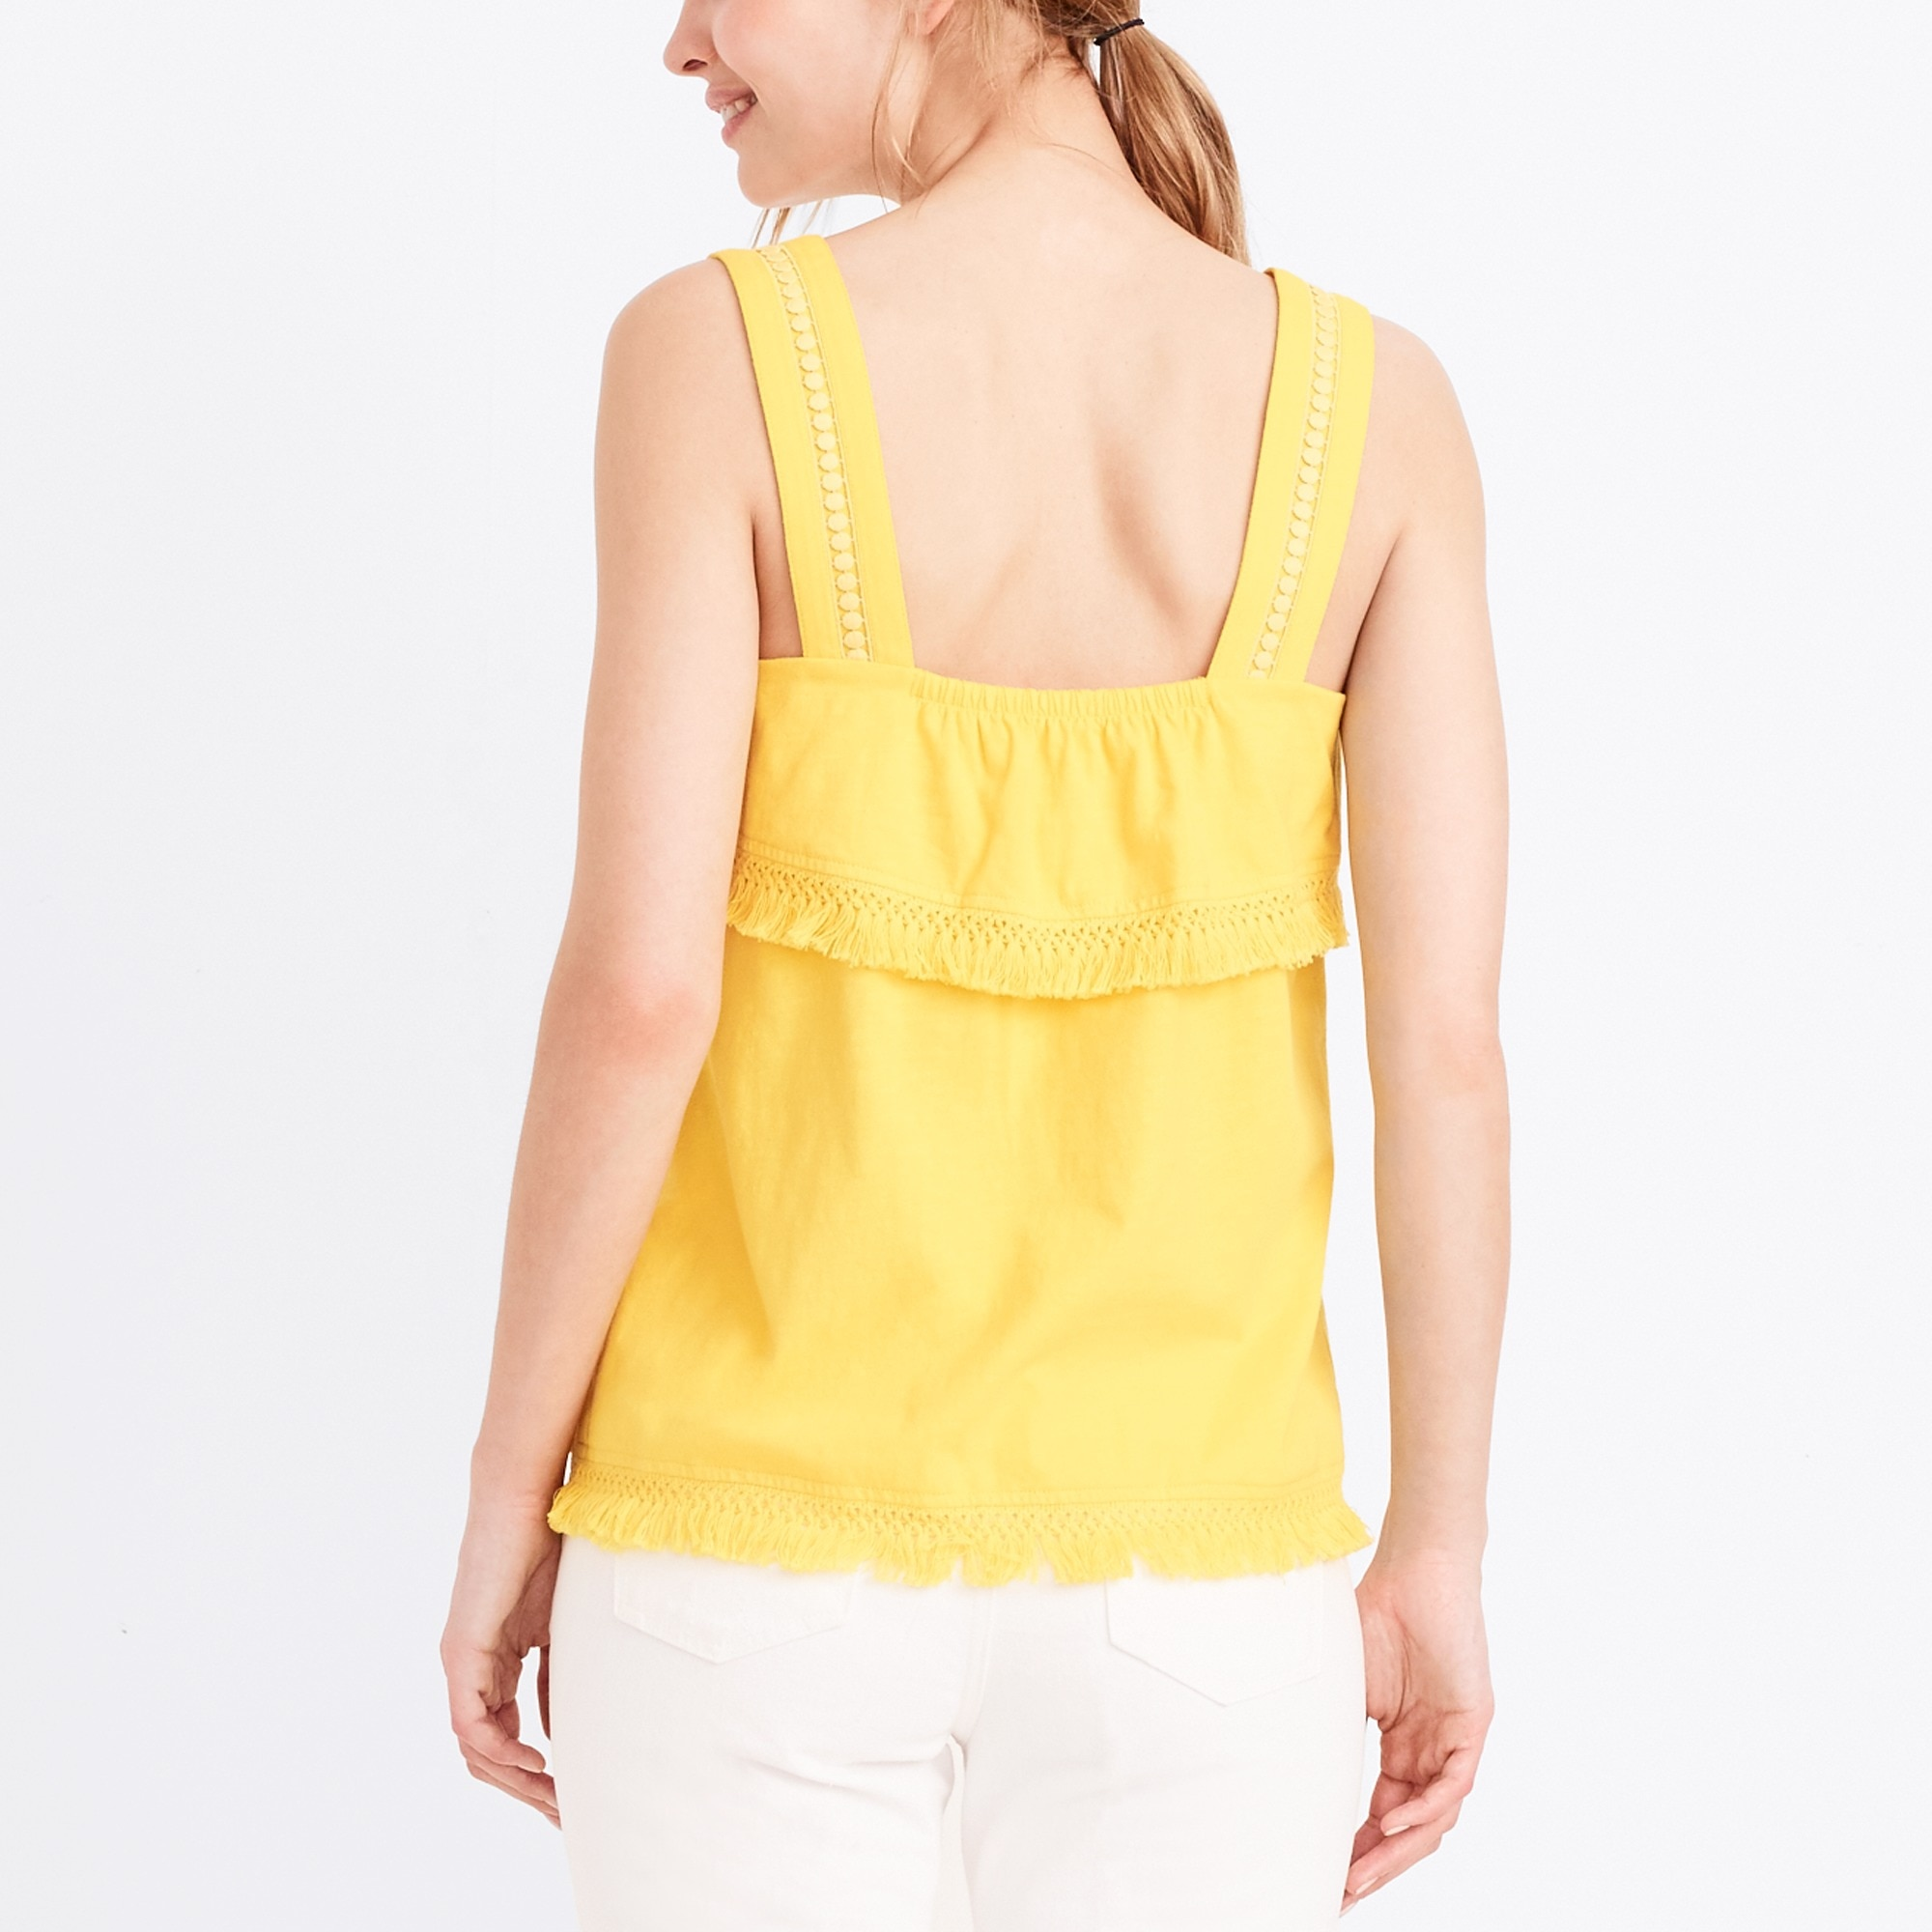 Image 3 for Fringe tank top